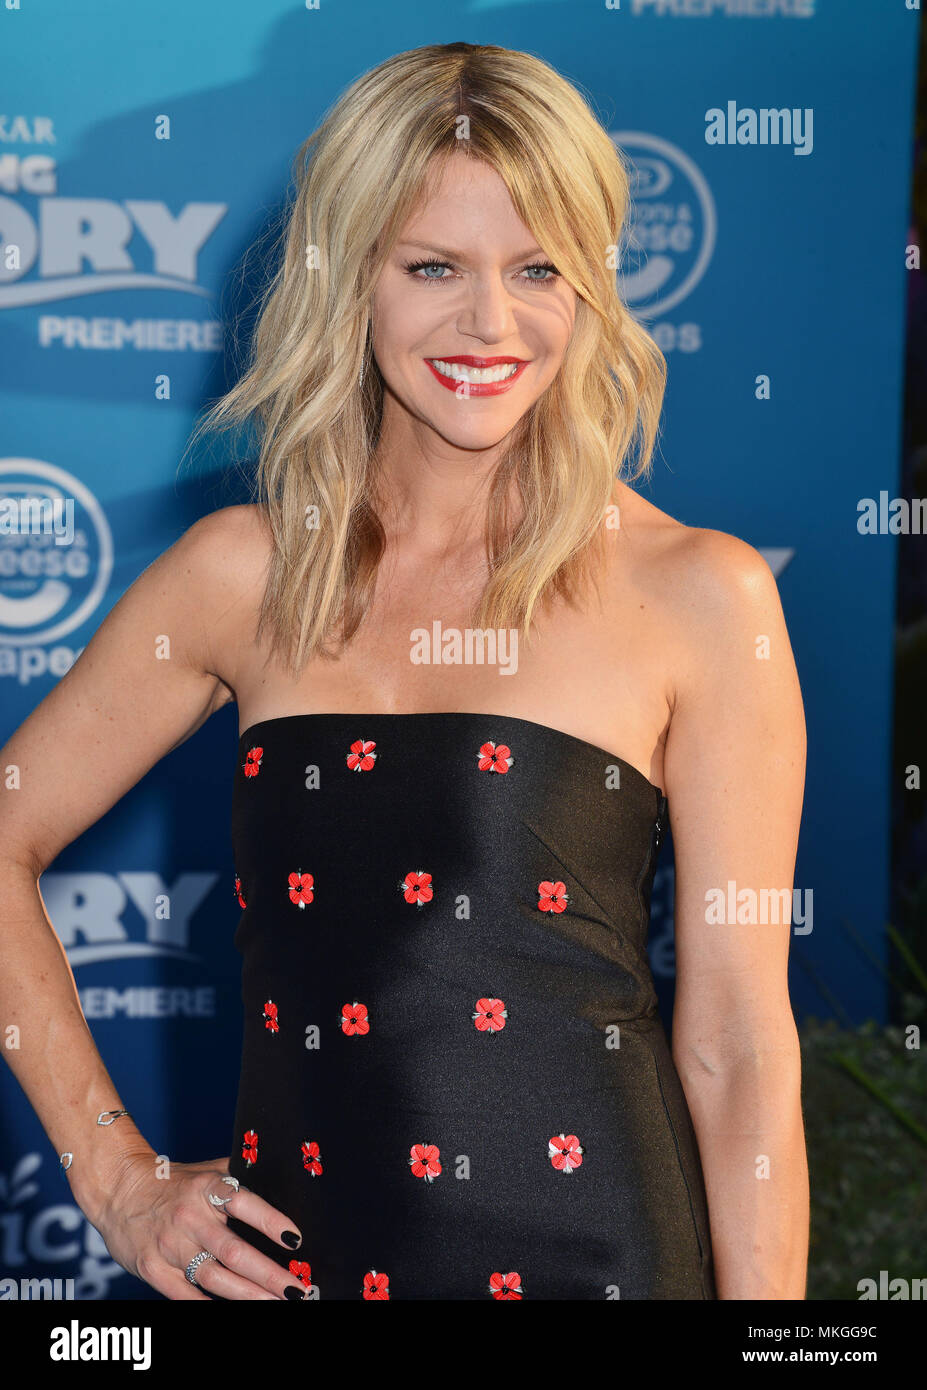 2019 Kaitlin Olson nude (61 foto and video), Topless, Hot, Twitter, braless 2018